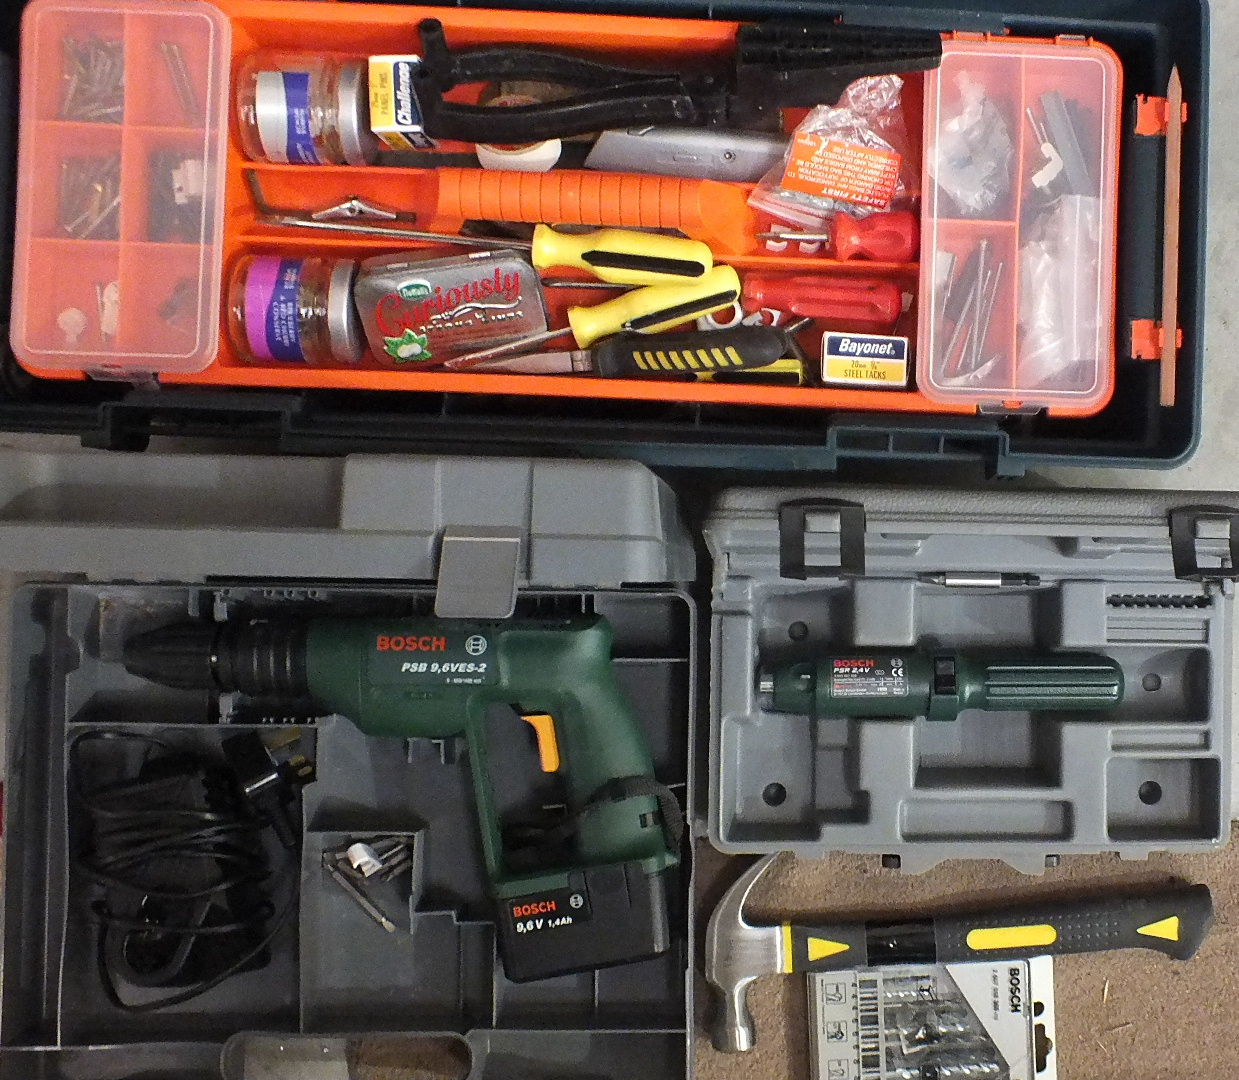 Lot 50 - A Bosch PSB 9,6VES-2 battery operated drill, boxed and a collection of hand tools, etc.